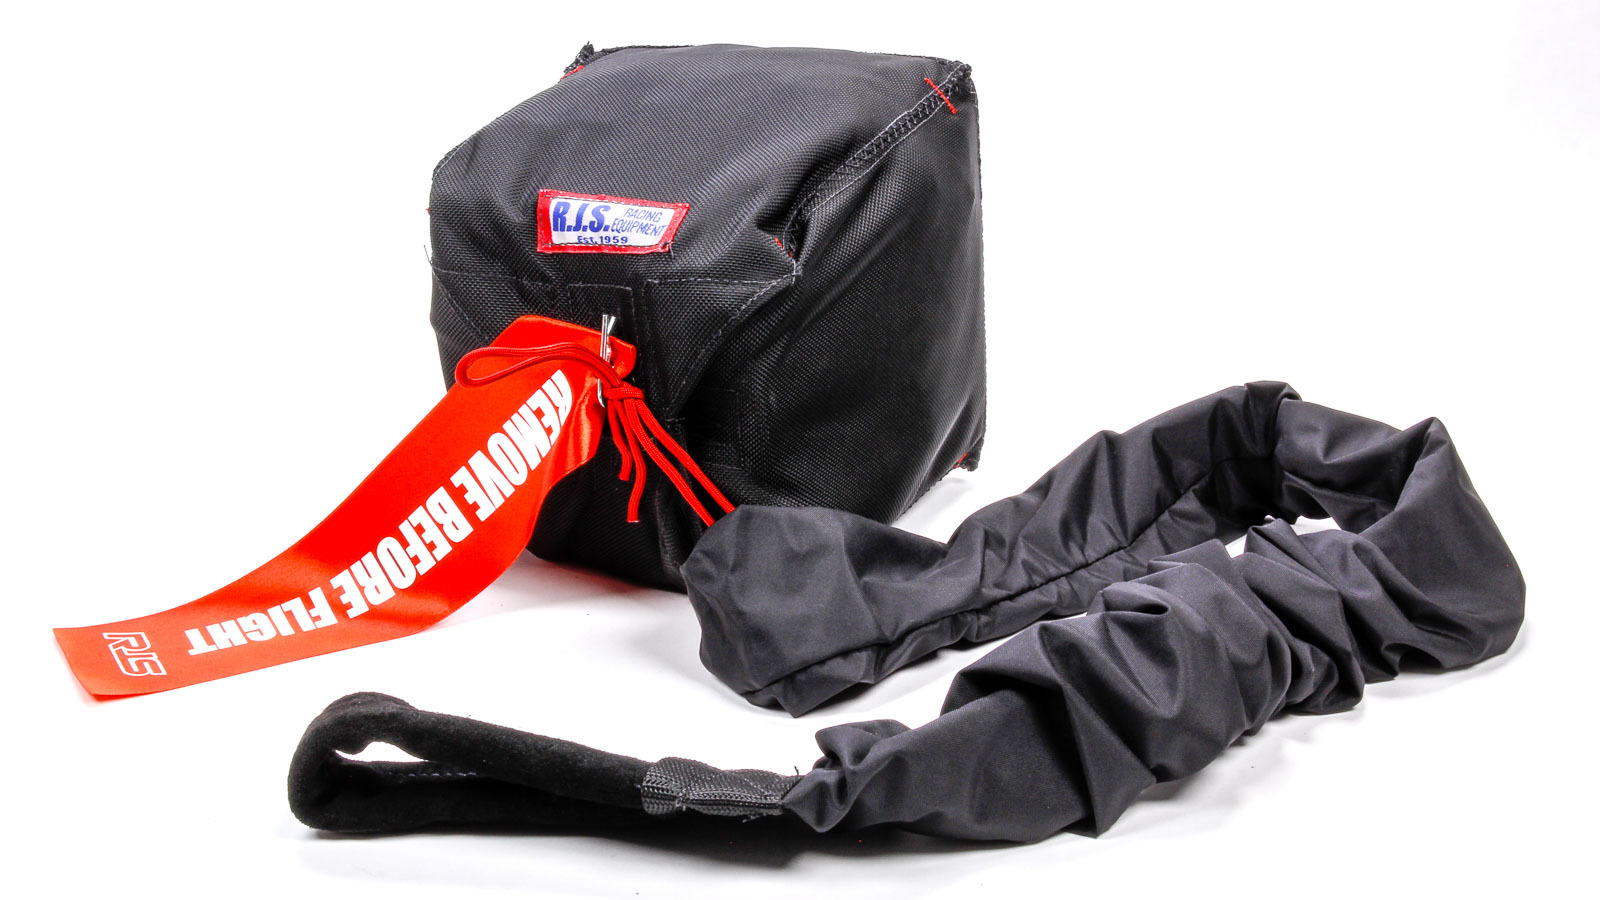 Rjs Safety Qualifier Chute W/ Nylon Bag and Pilot Blue